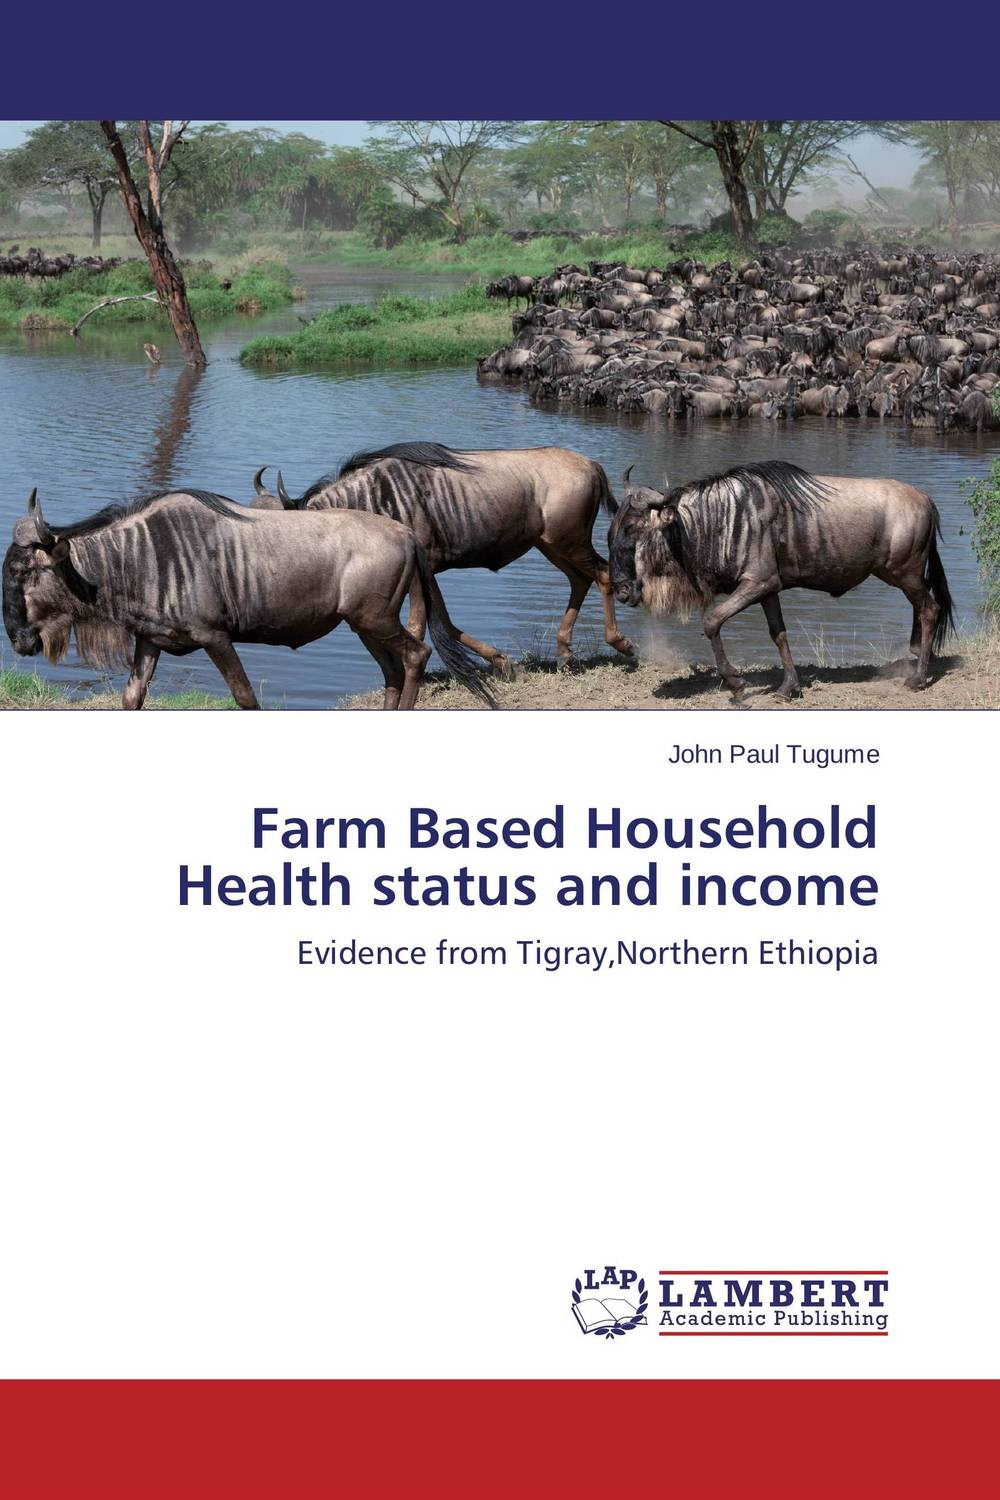 Фото Farm Based Household Health status and income cervical cancer in amhara region in ethiopia